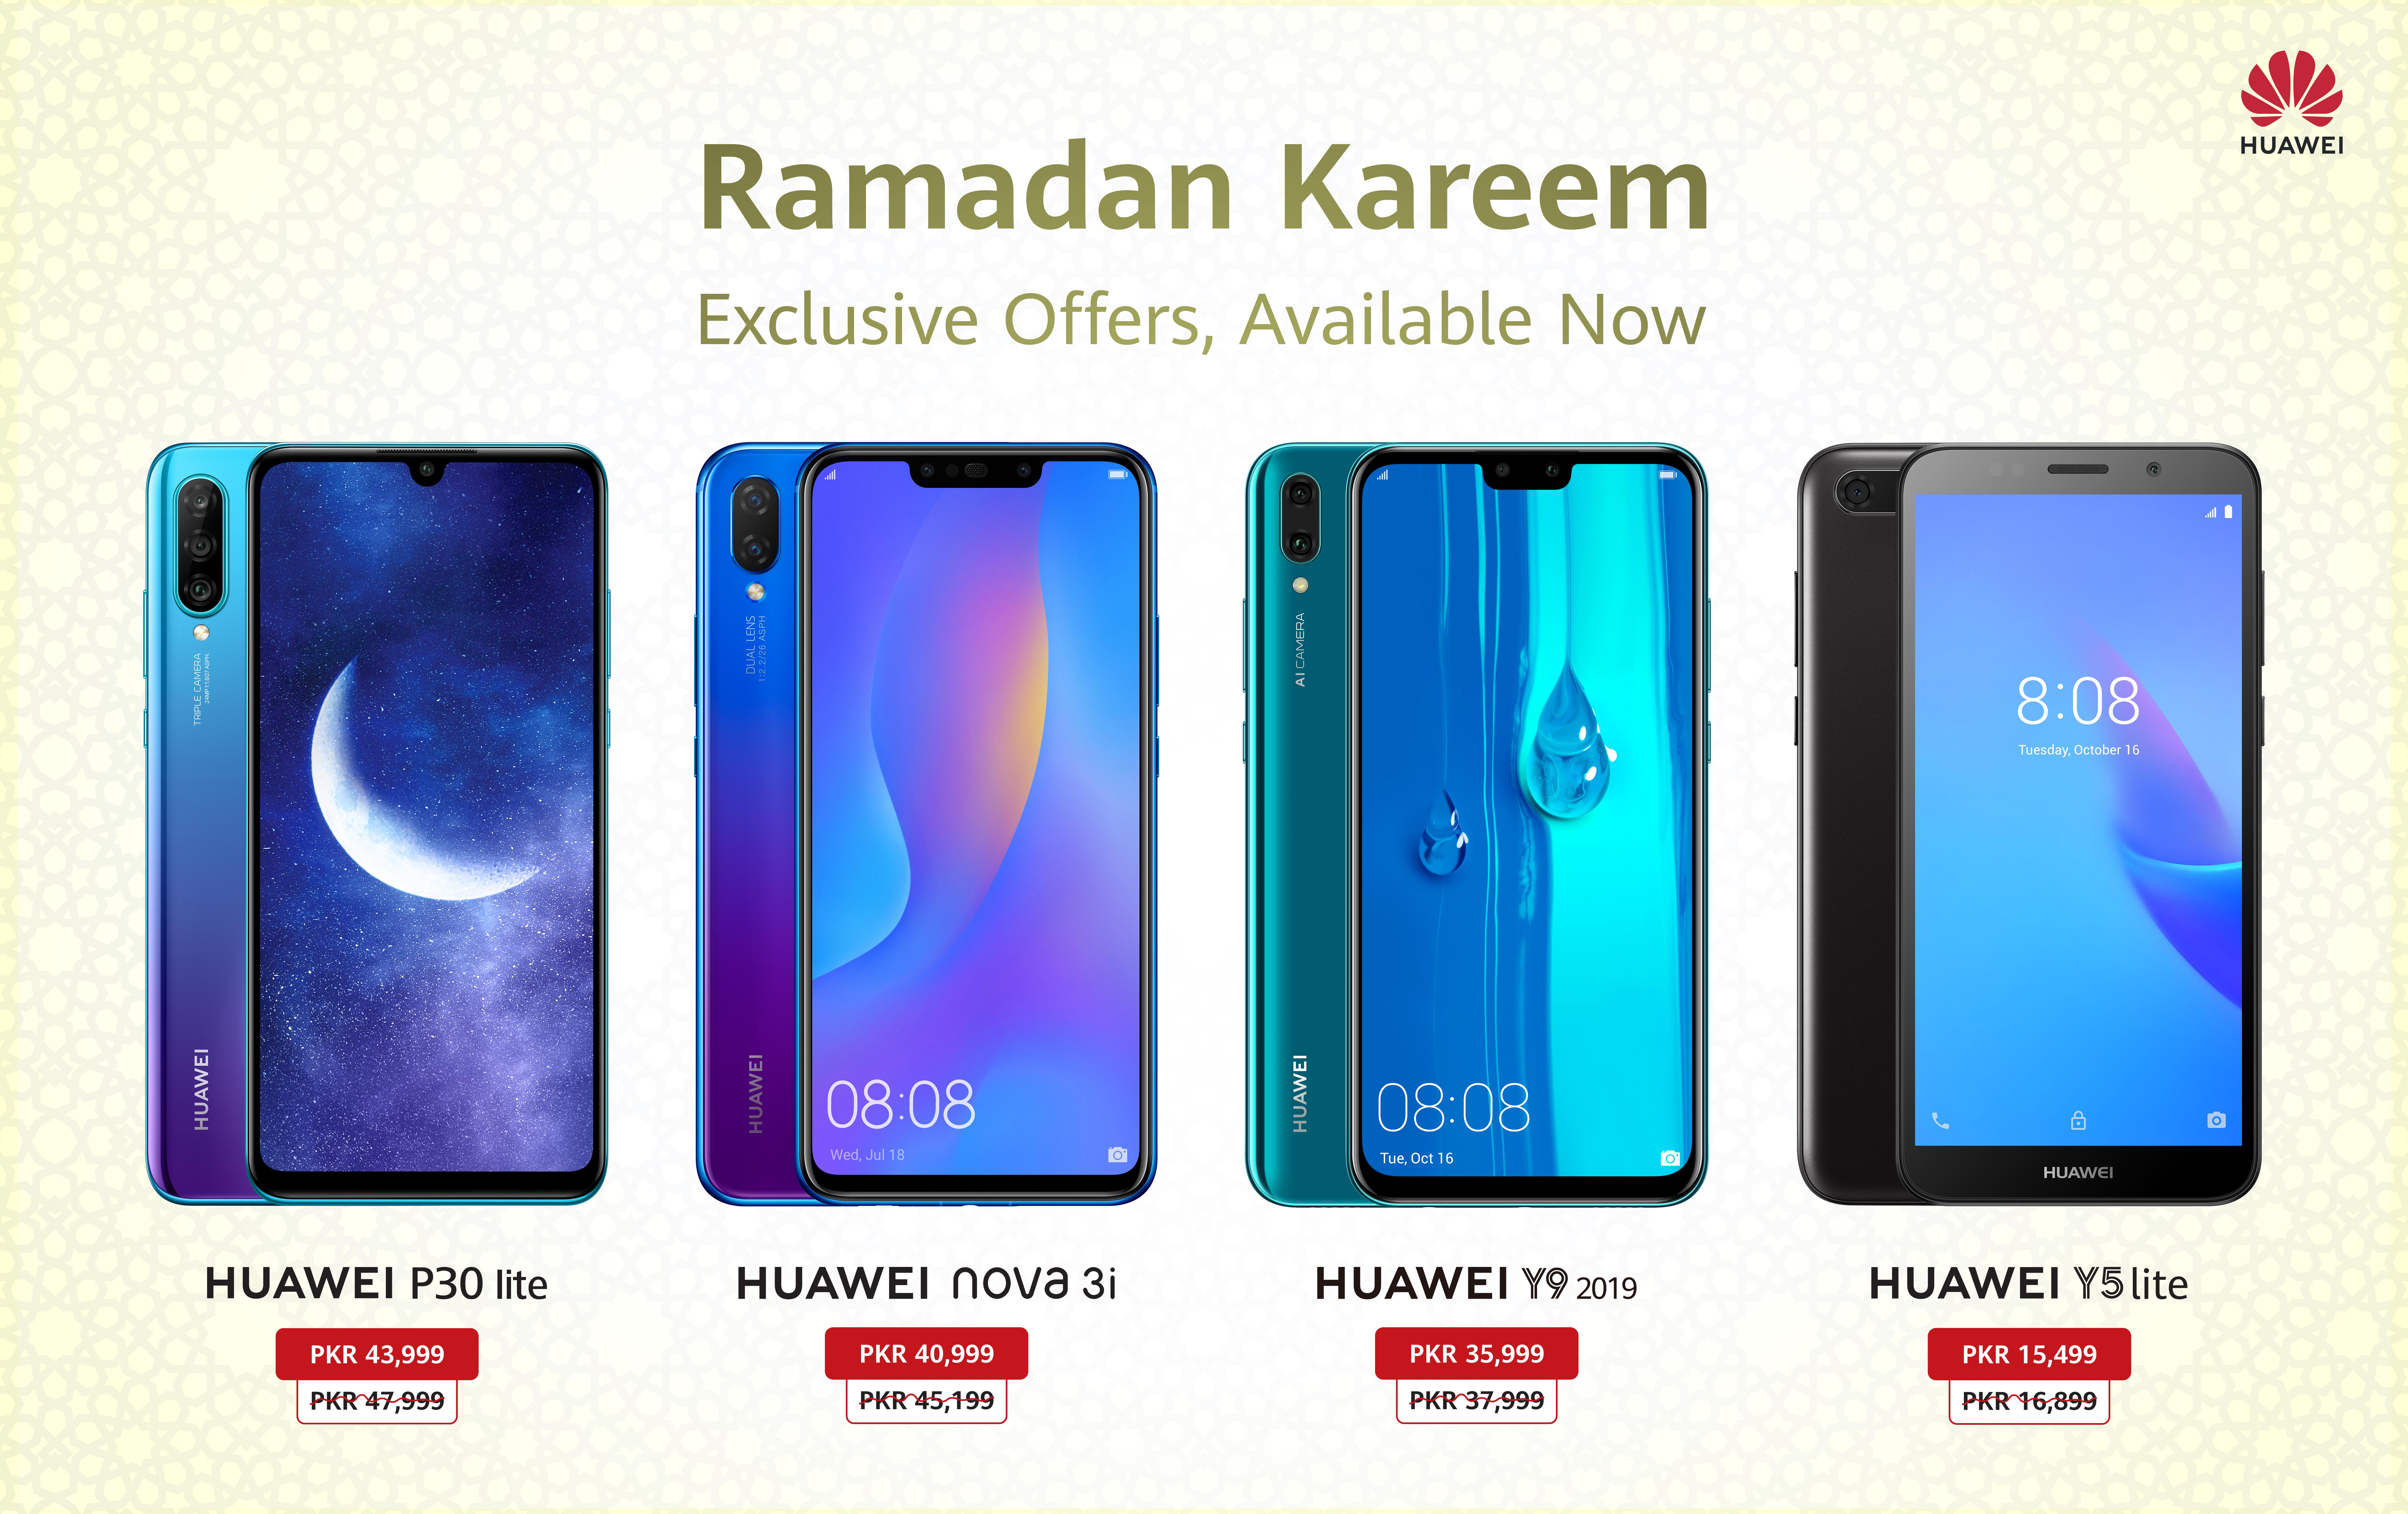 Exclusive Ramadan Offer On HUAWEI P30 lite and Other Huawei Smartphones